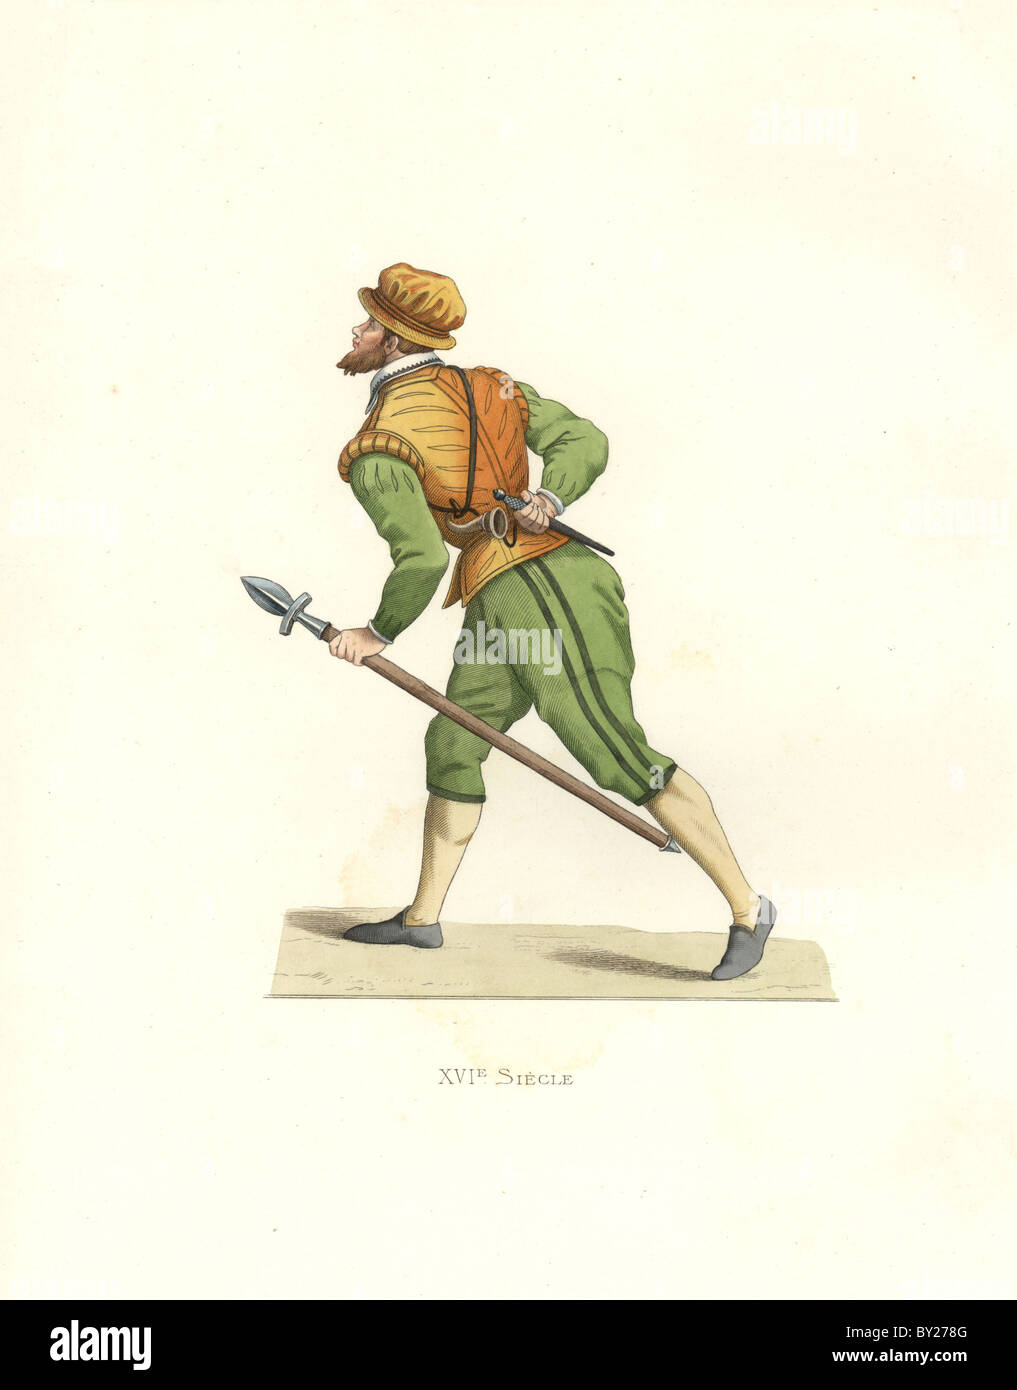 Hunter at the time of Charles IX of France. - Stock Image